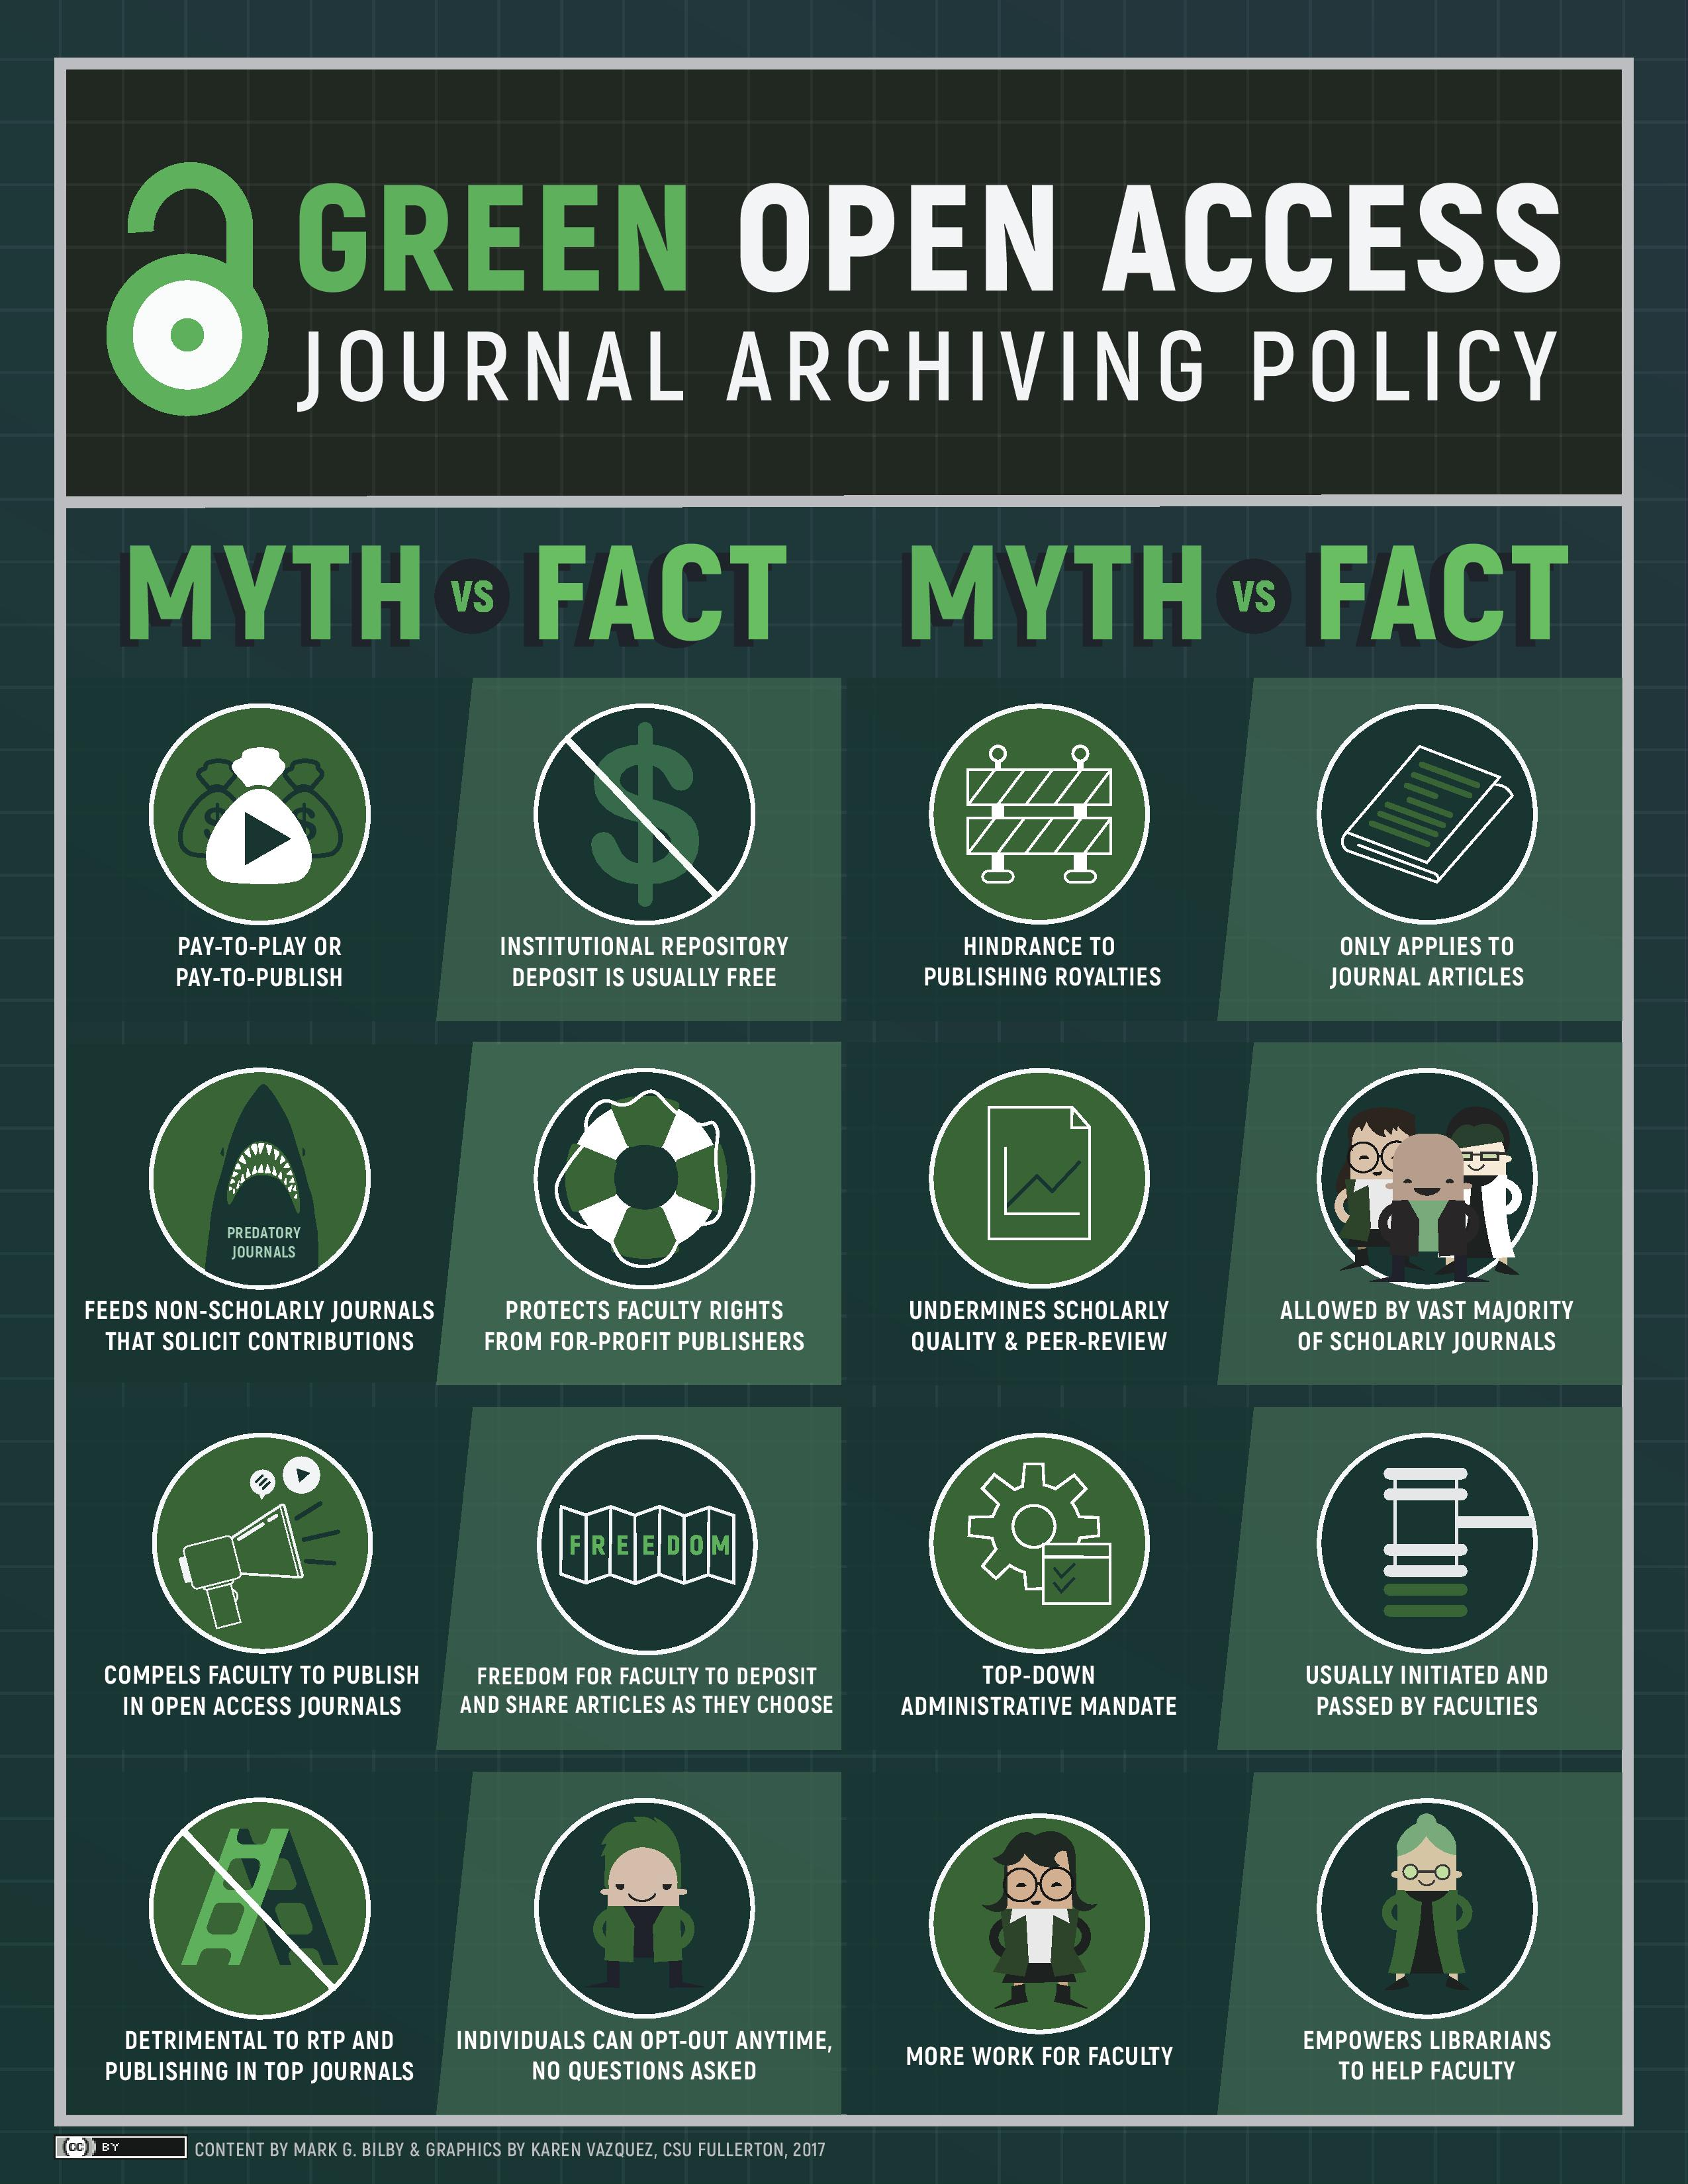 Green Open Access Journal Archiving Policy: Myth vs. Fact. Myth: Pay-to-play or pay-to-publish. Fact: Institutional repository deposit is usually free. Myth: Feeds non-scholarly journals that solicit contributions. Fact: Protects faculty rights from for-profit publishers. Myth: Compels faculty to publish in Open Access Journals. Fact: Freedom for faculty to deposit and share articles as they choose. Myth: Detrimental to RTP and publishing in top journals. Fact: individuals can opt-out anytime, no questions asked. Myth: hindrance to publishing royalties. Fact: Only applies to journal articles. Myth: undermines scholarly quality and peer-review. Fact: allowed by a vast majority of scholarly journals. Myth: top-down administrative mandate. Fact: usually initiated and passed by faculties. Myth: more work for faculty. Fact: empowers librarians to help faculty.